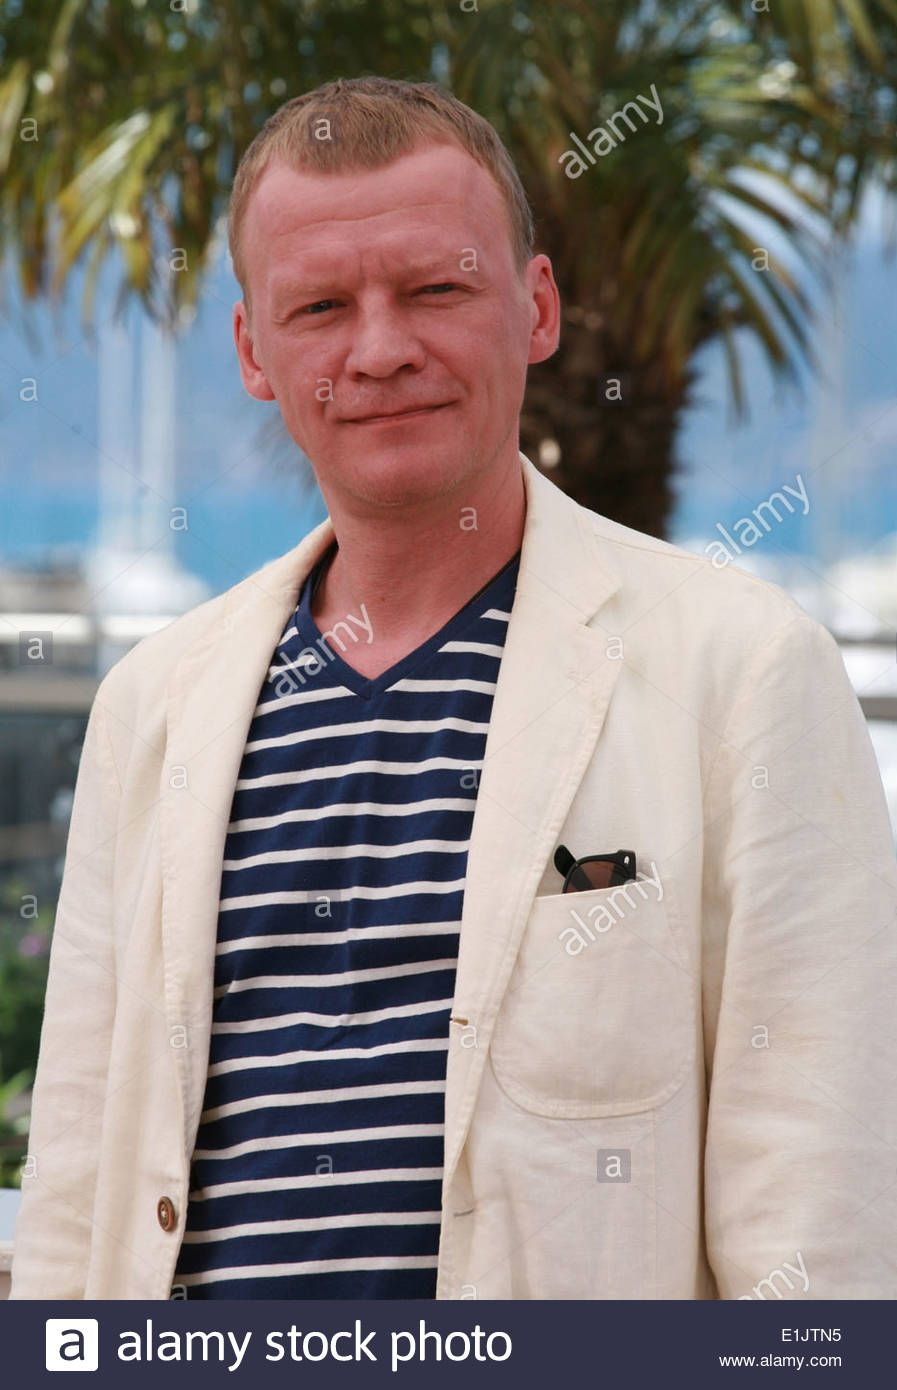 Leonid Kharitonov (actor): biography, photos and interesting facts 22